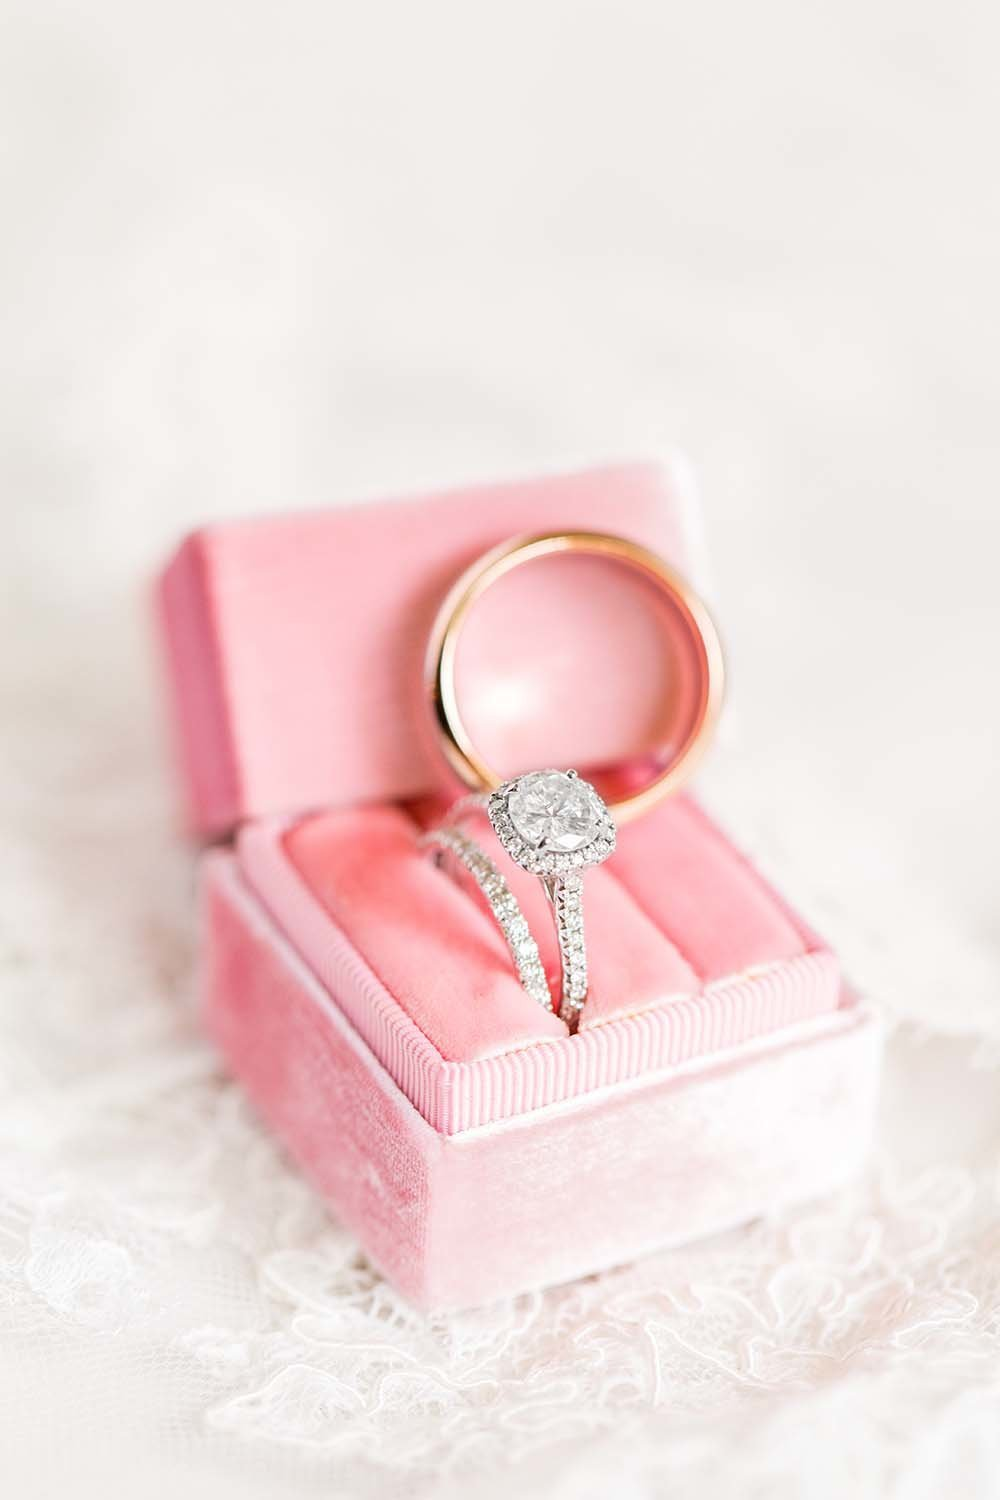 Hannah-Barlow-Photography-Wedding-Ring-Detail-Photo